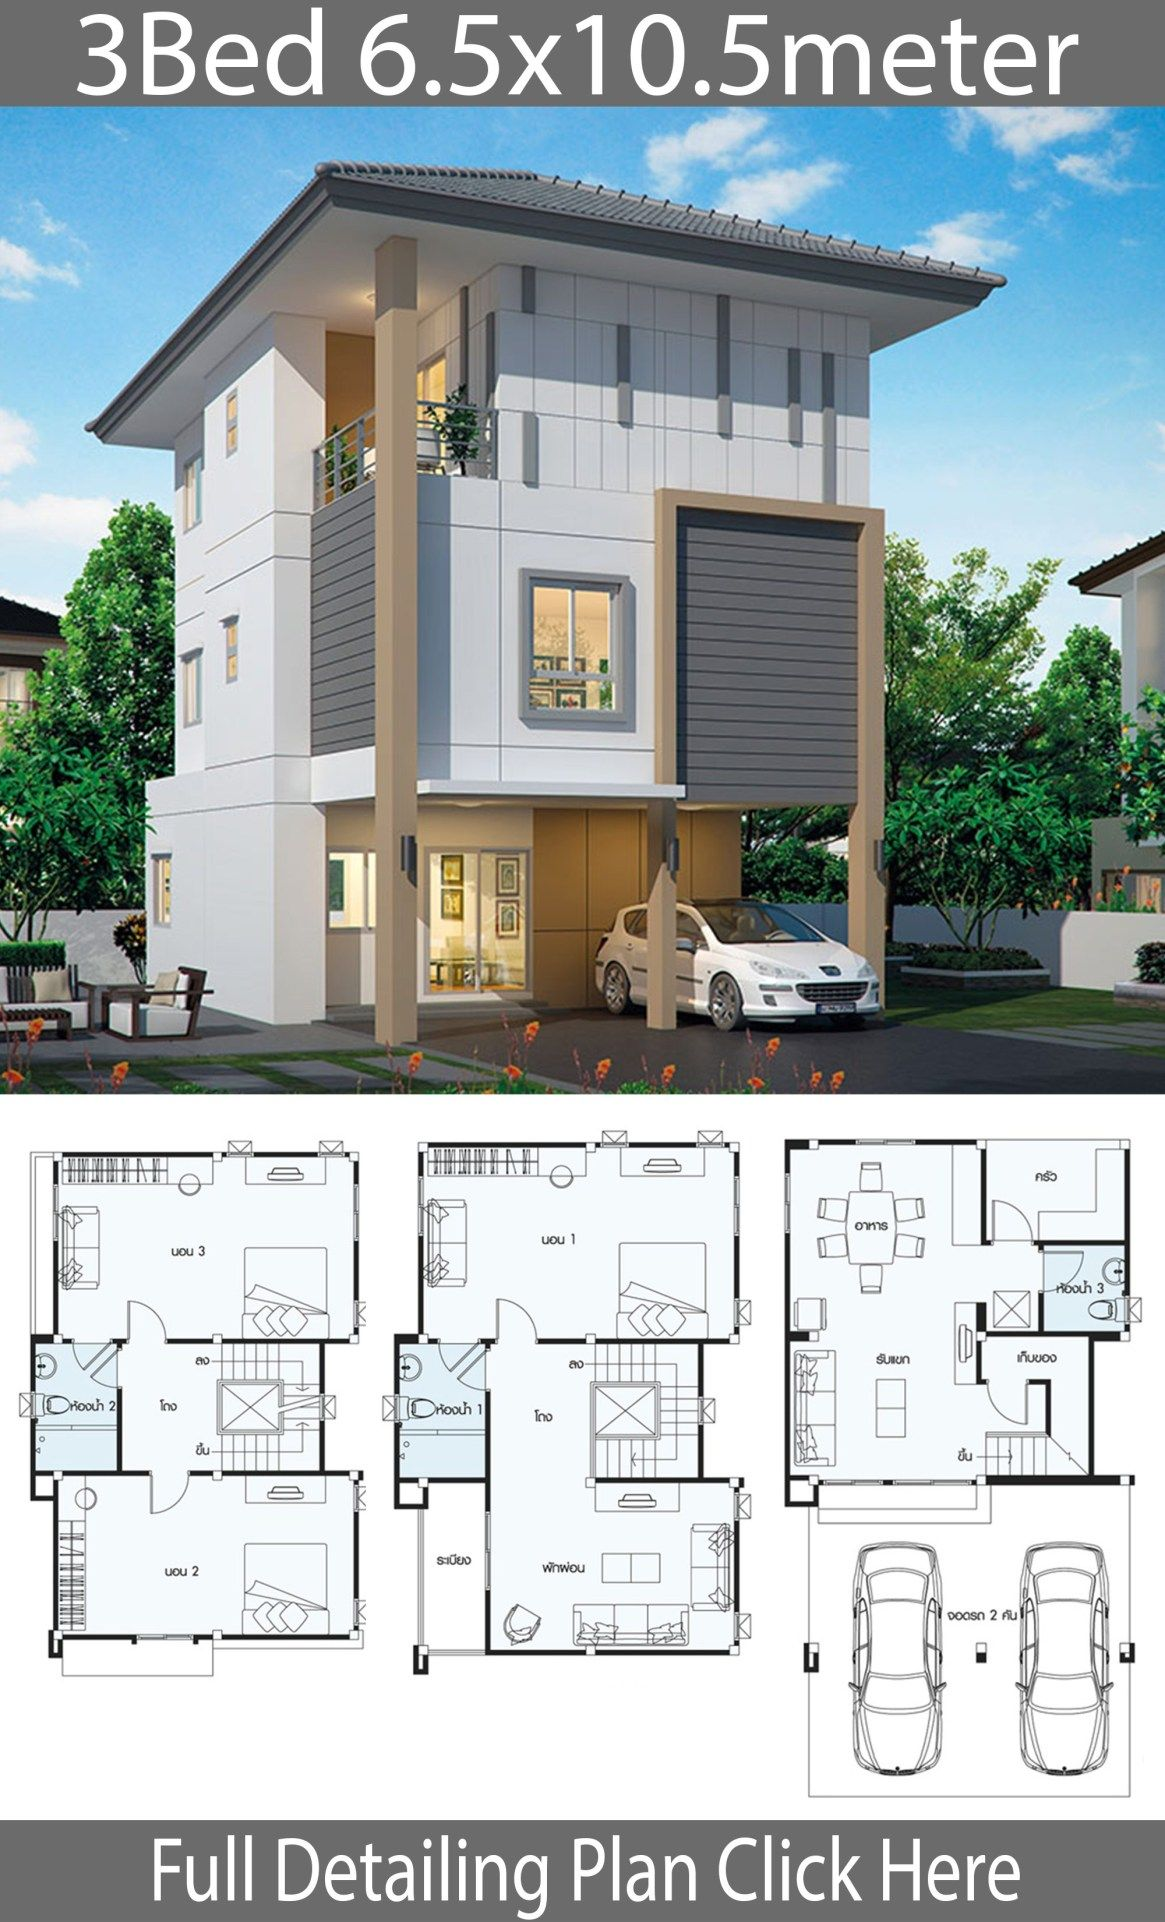 Home Design 6 5x10 5m With 3 Bedrooms With Images Facade House House Design Modern House Plans